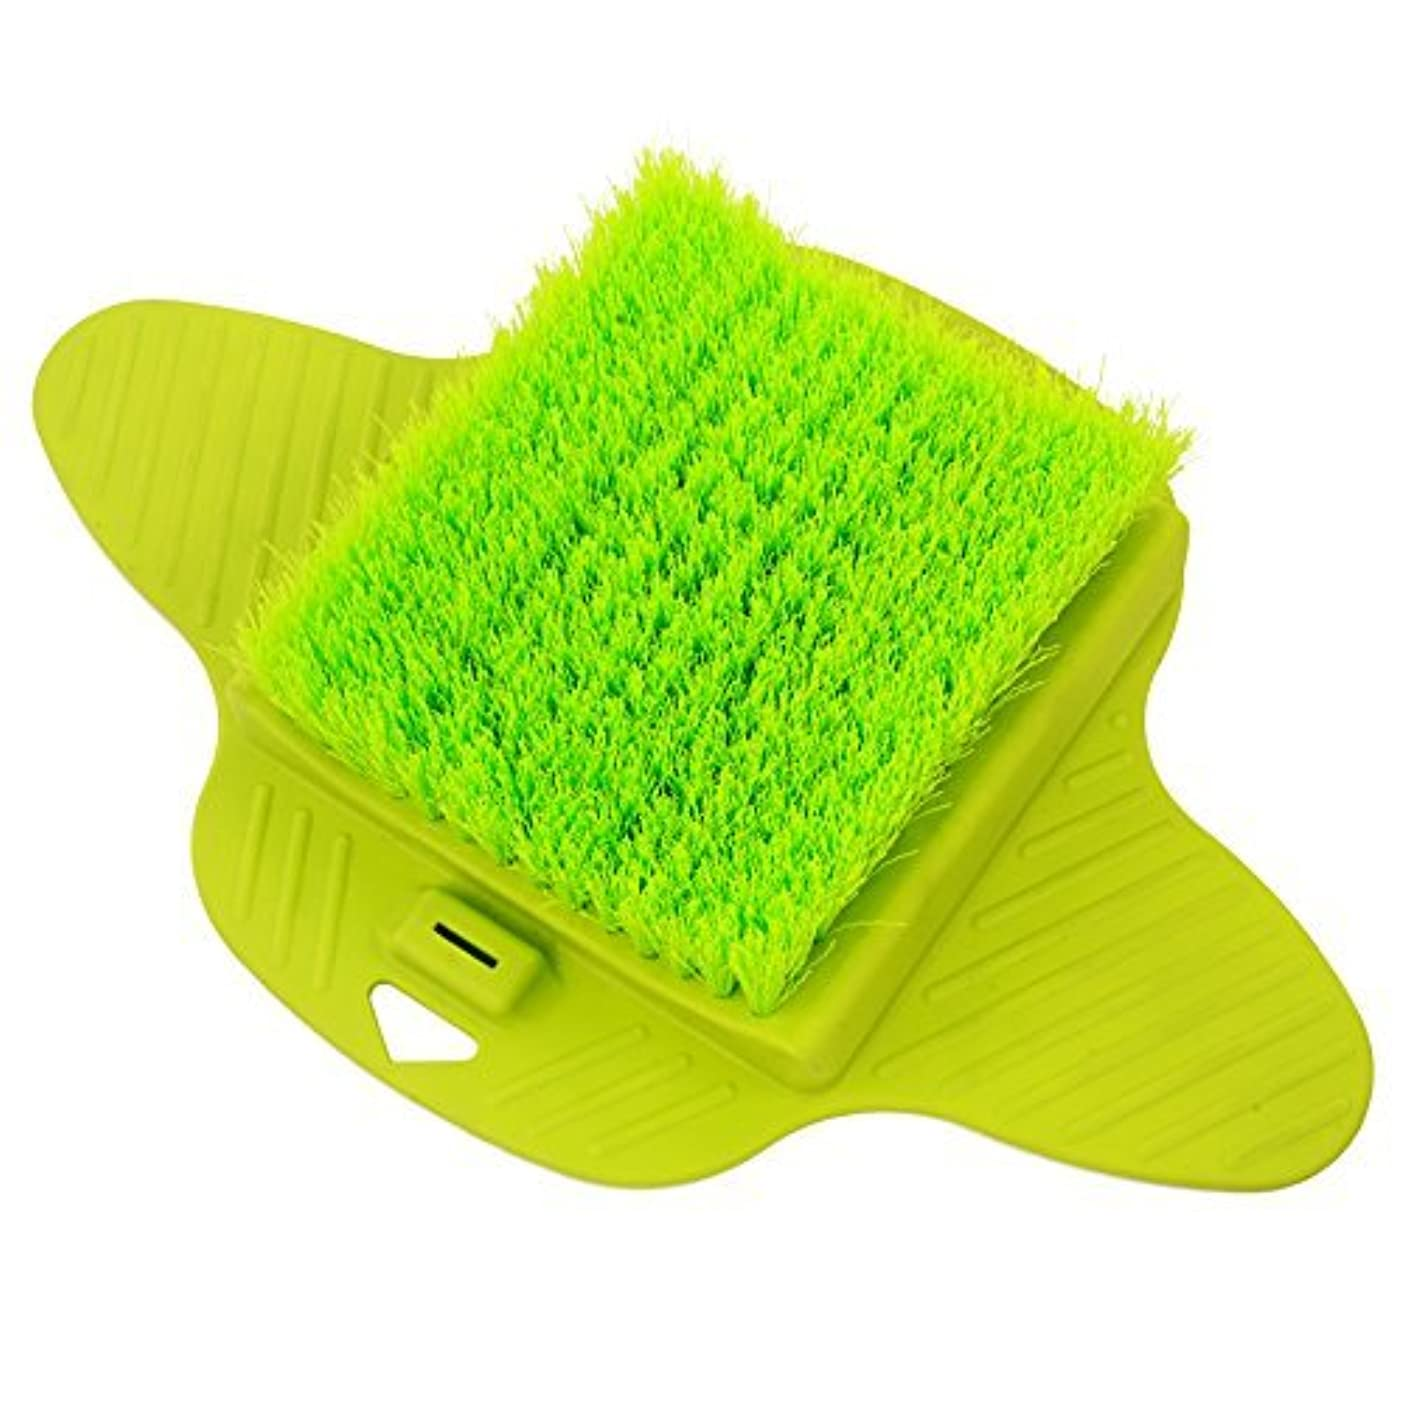 メダル晩ごはんプラスAurora Health & Beauty AW206 Foot Brush Scrubber with Dense Bristles for Massage Exfoliation and Callus Removal...